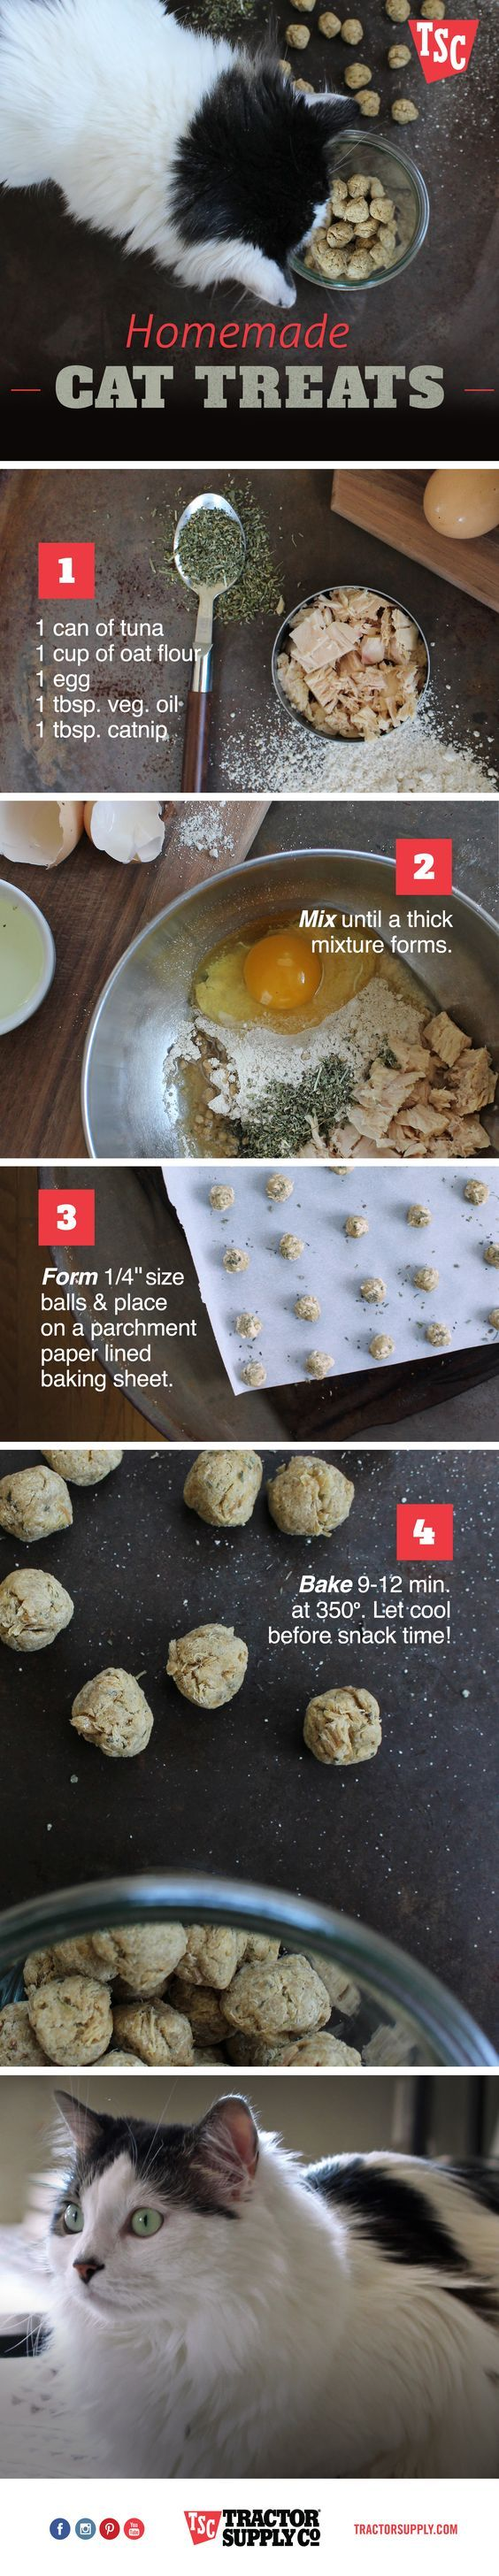 Catnip Biscuits Recipe Easy Video Tutorial